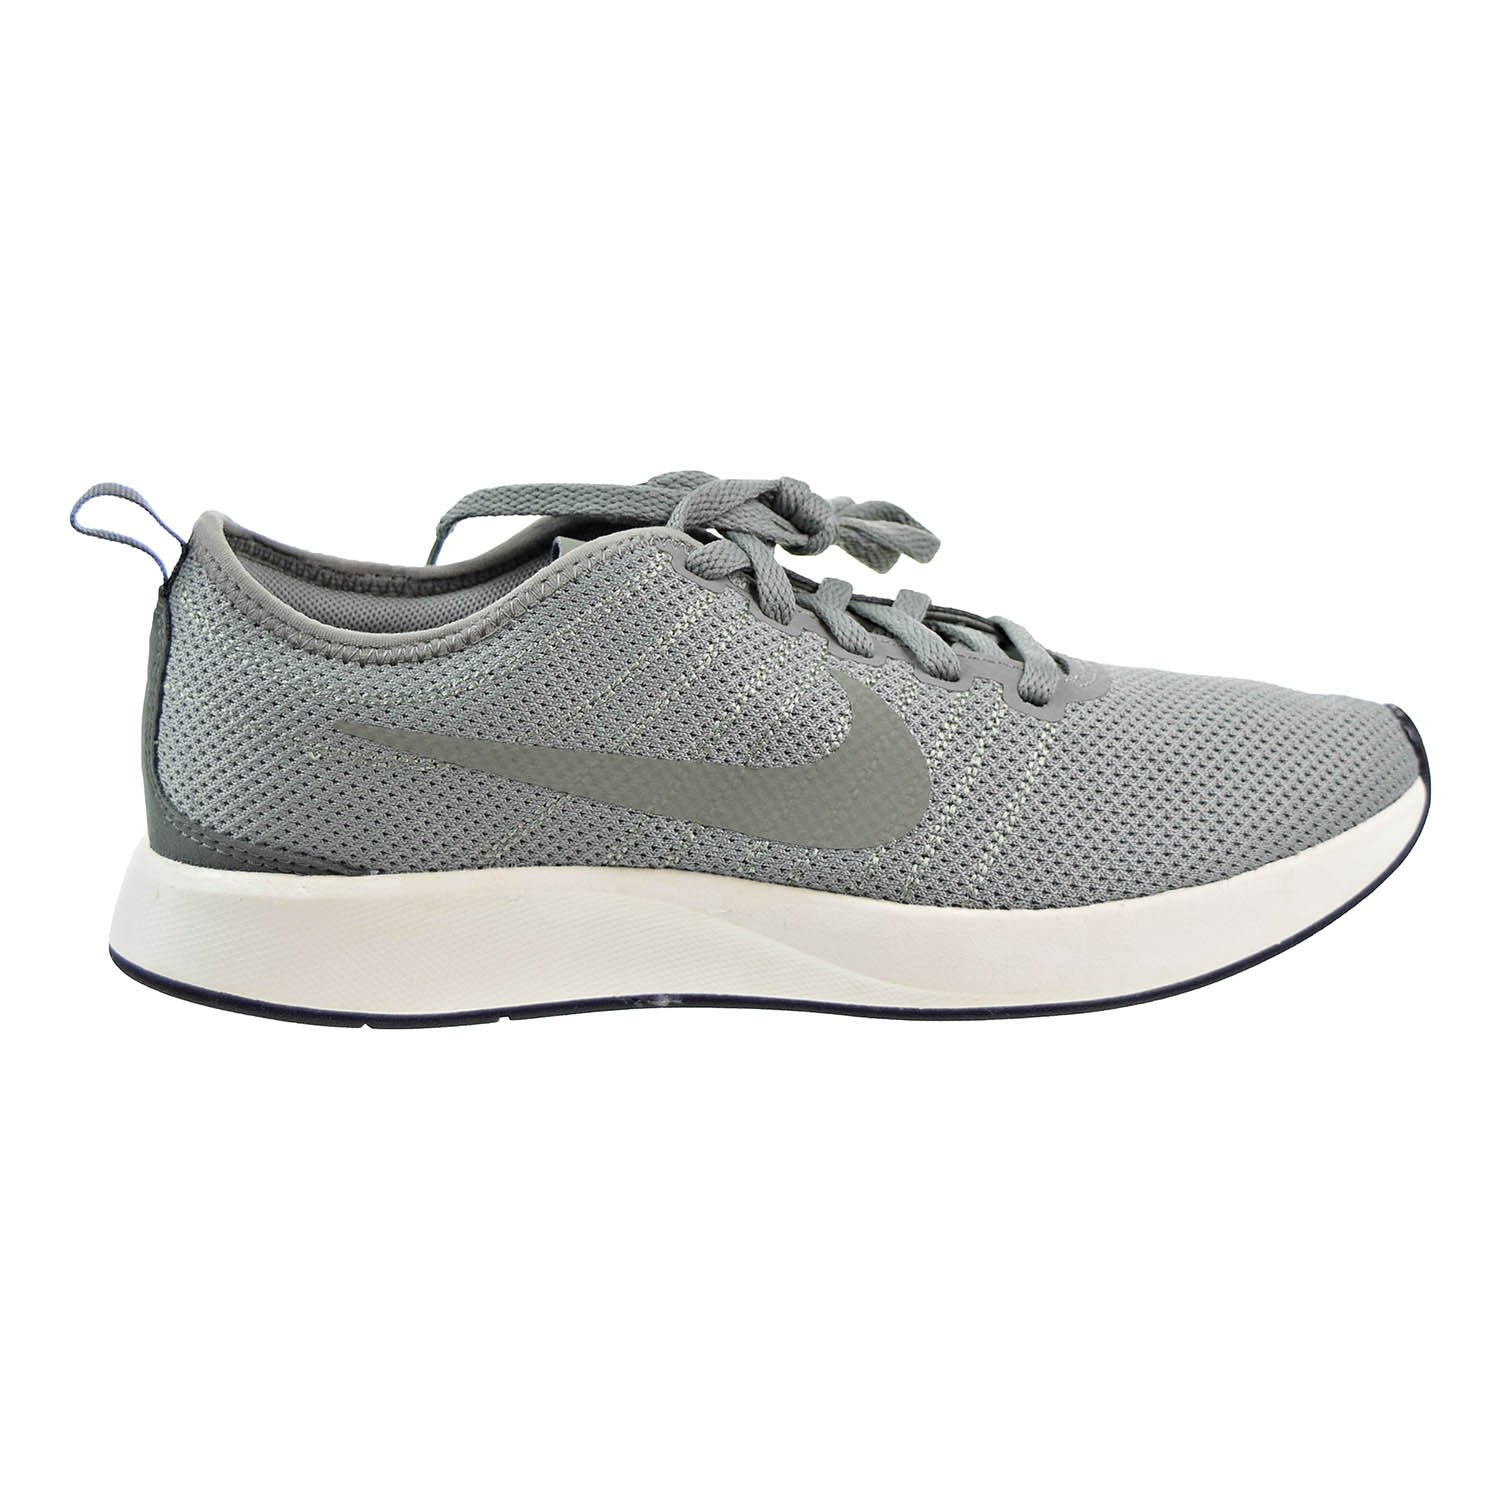 NIKE Women's Dualtone Racer Running Shoe B073S8P1ZX 7.5 B(M) Stucco US|Dark Stucco / Dark Stucco B(M) 6d7c83